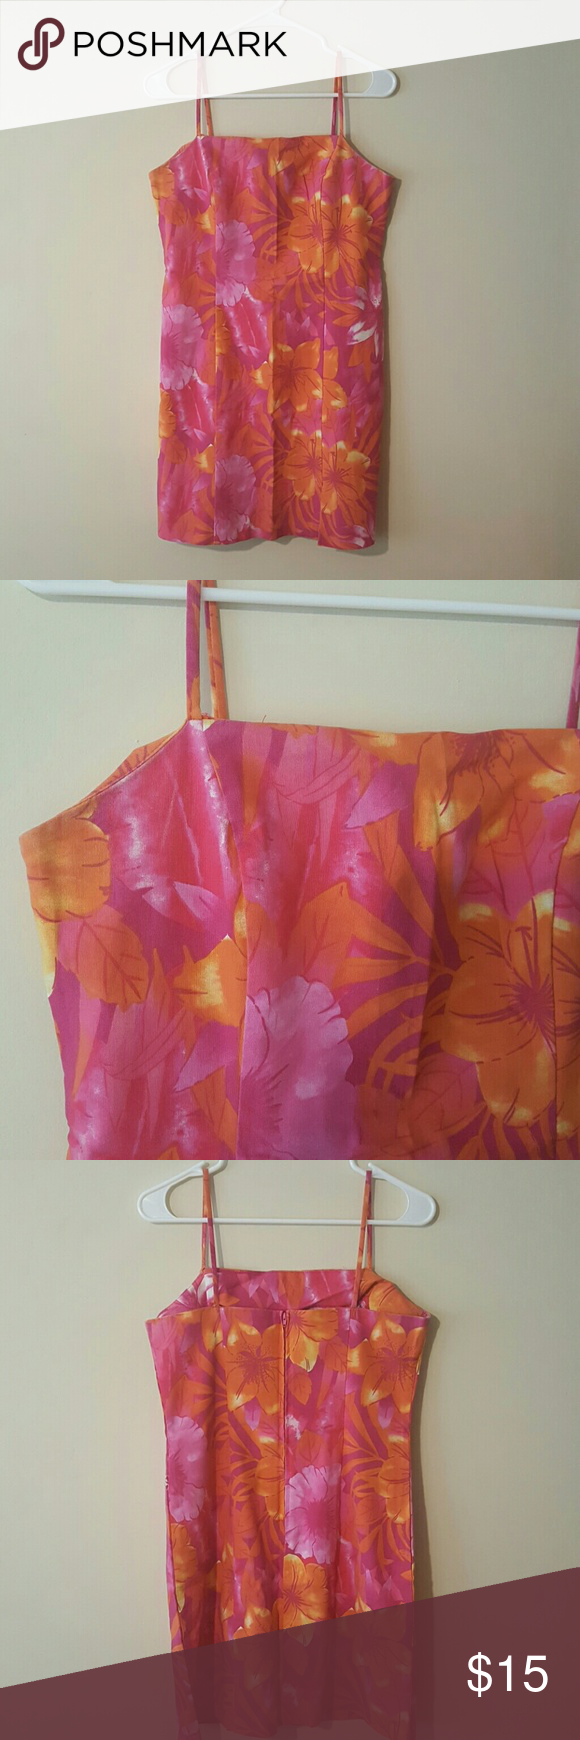 """City Triangle Spaghetti Strap Sundress Floral motif in shades of pink, white, orange and magenta stretchy, zipper backed Sundress. With spaghetti straps. Excellent condition. Mid length with sexy slit above right hem.  28"""" from chest to bottom hem 16.5"""" from armpit to armpit  16.25"""" waist 19"""" across hip area Dresses Midi"""